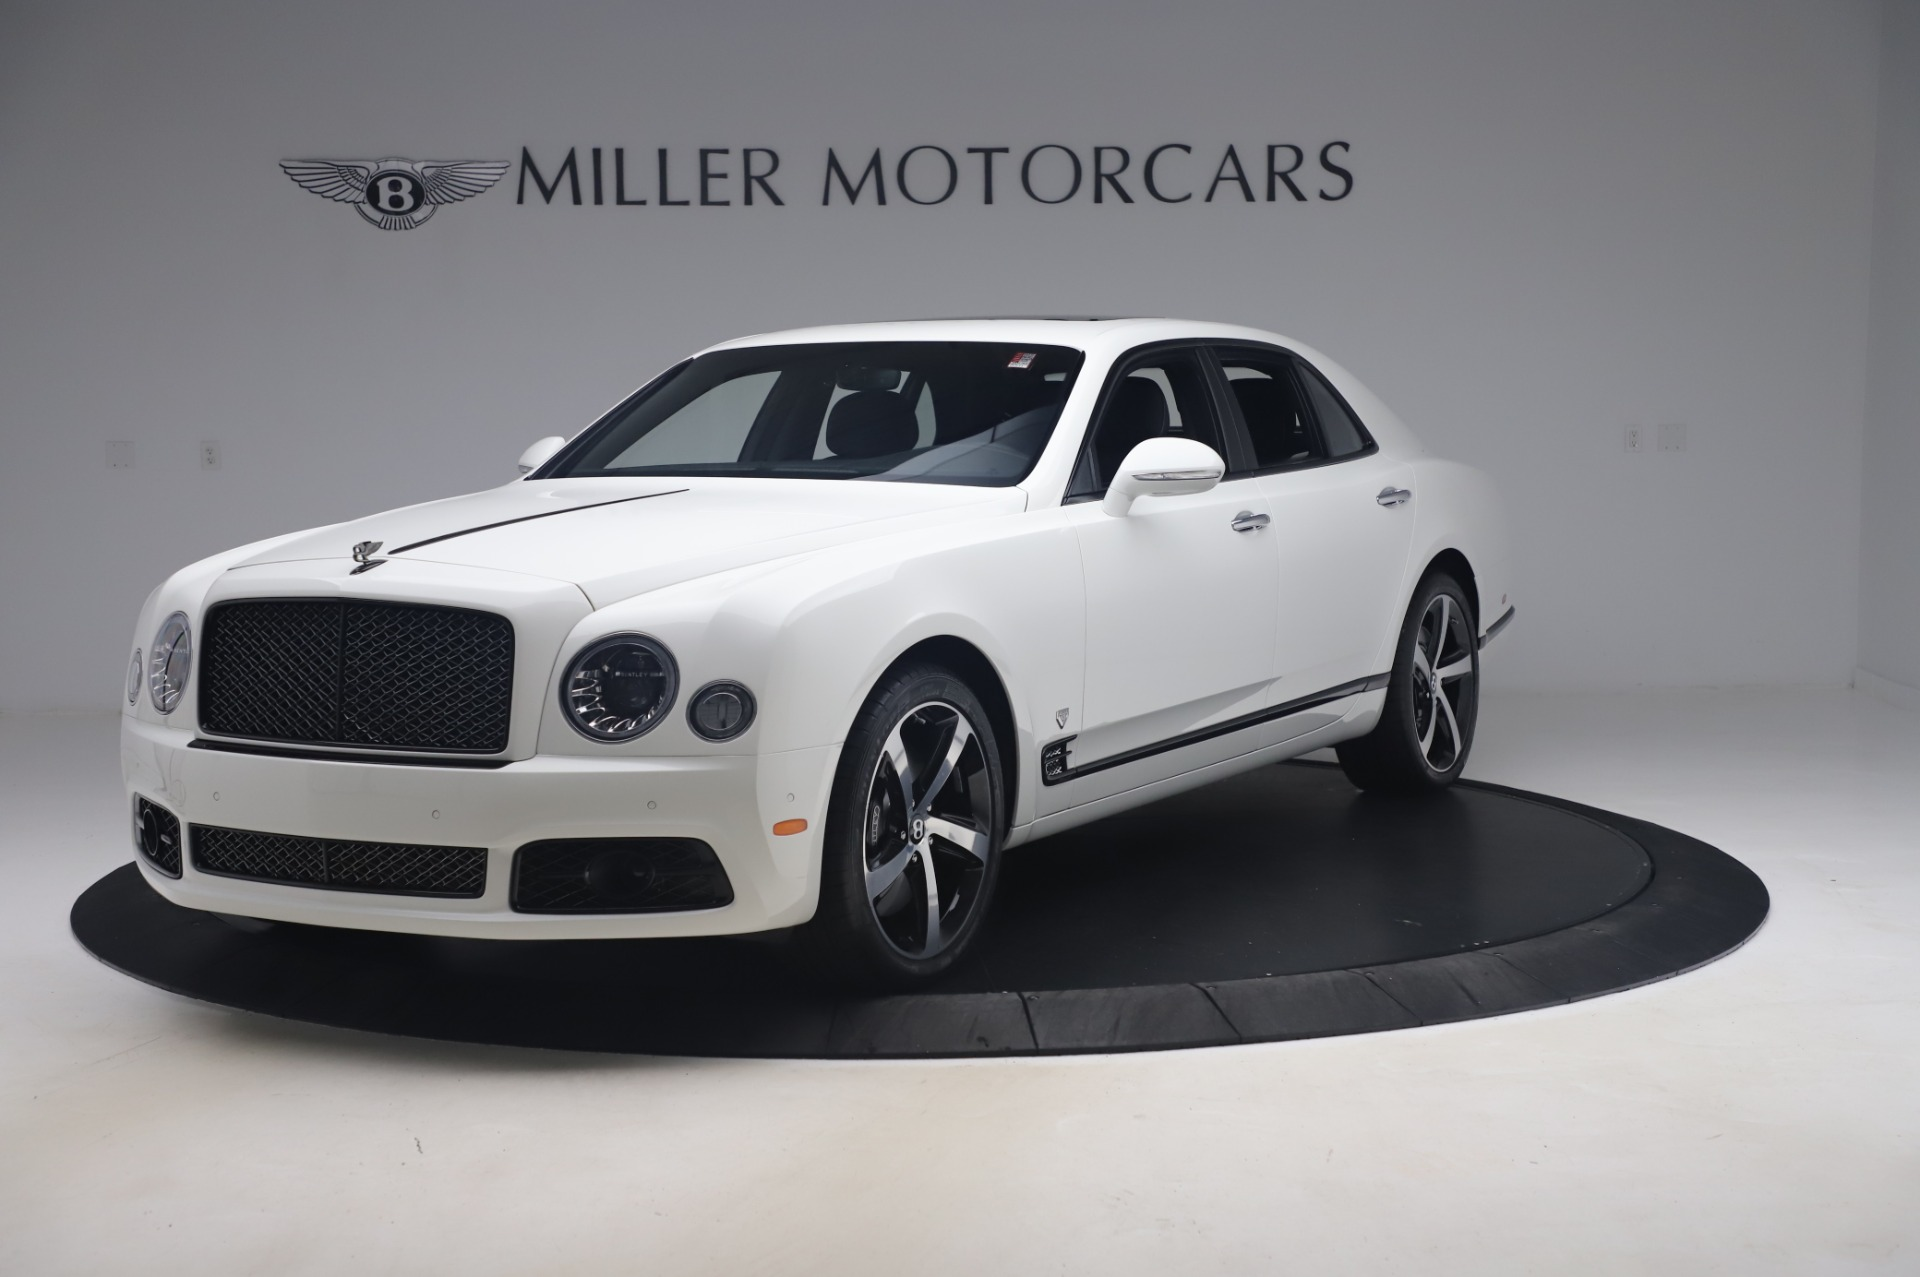 New 2020 Bentley Mulsanne 6.75 Edition by Mulliner for sale $363,840 at Pagani of Greenwich in Greenwich CT 06830 1